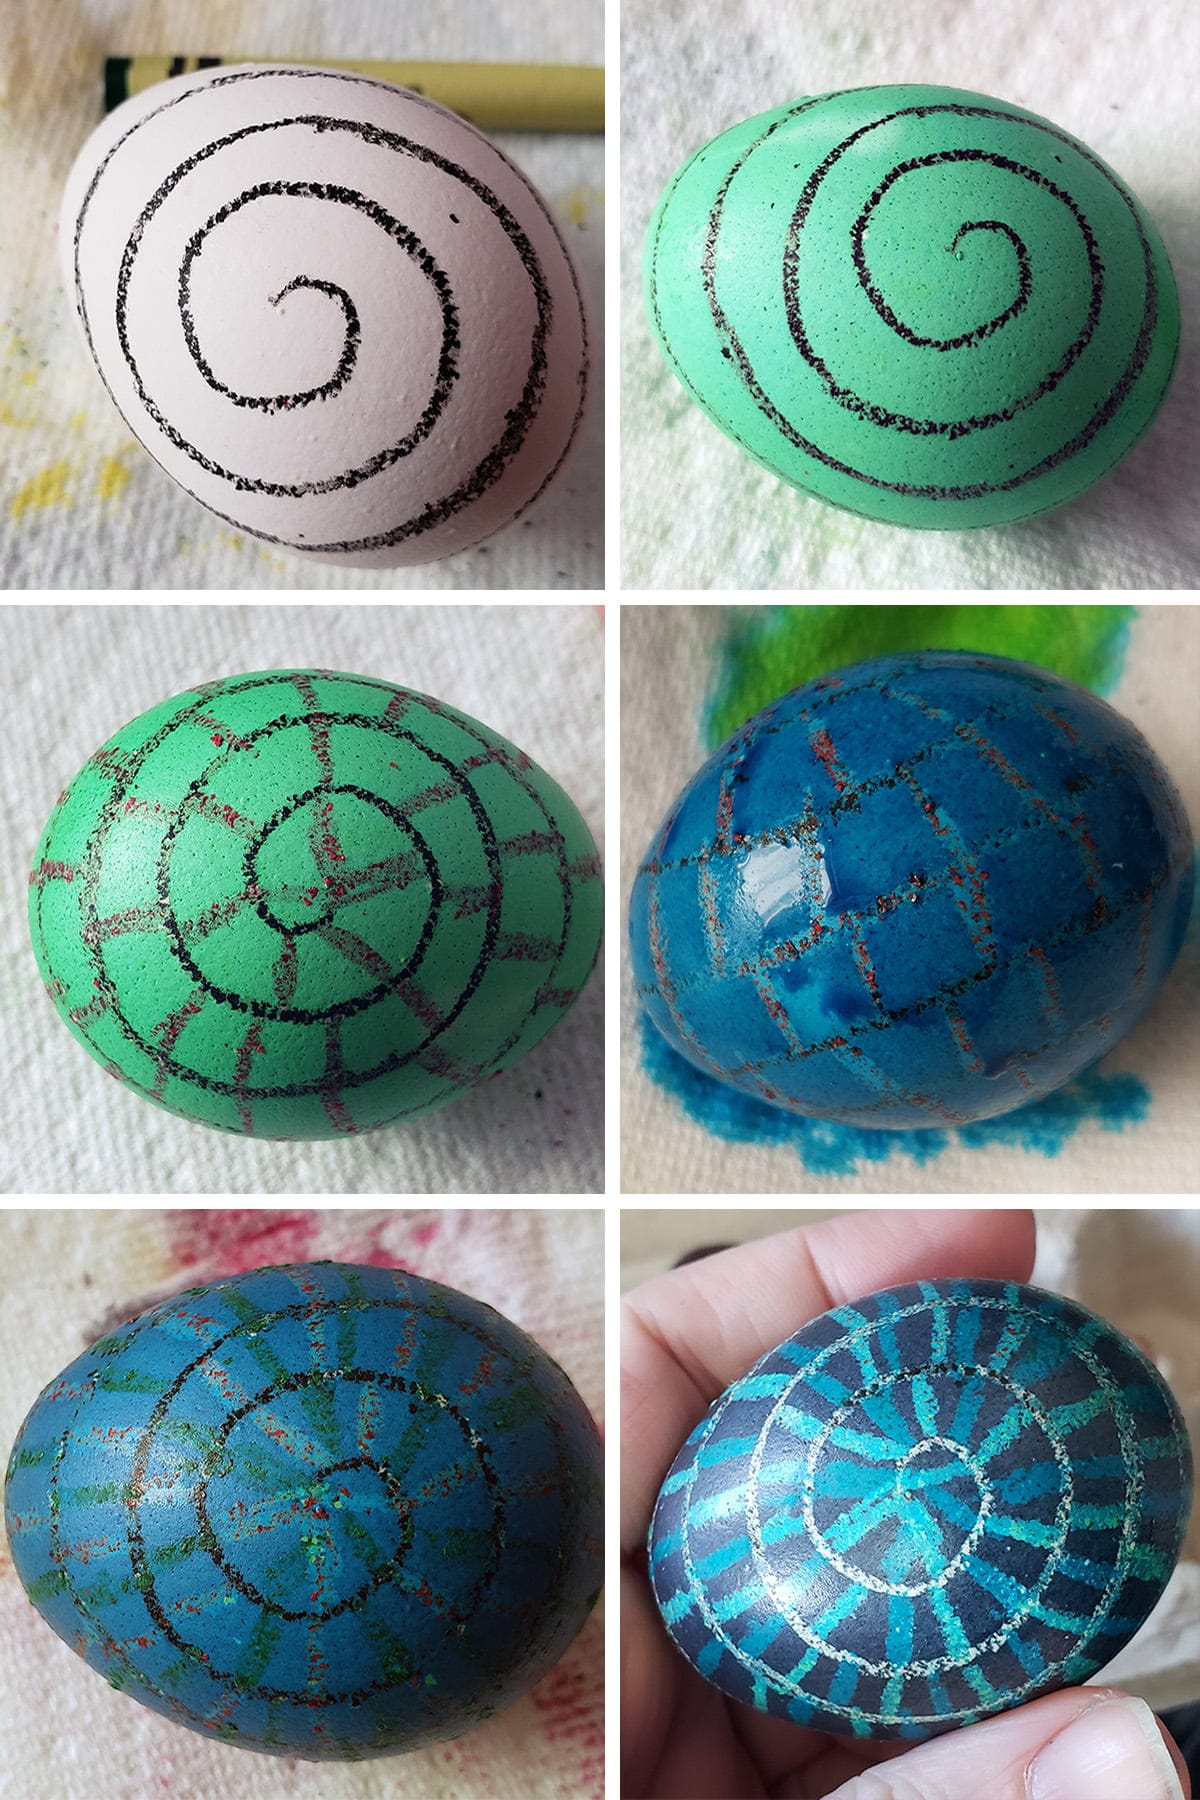 A 6 part compilation image showing a progression from a white egg with a black spiral drawn on it, to a finished Easter egg with a white, blue, and green spiral ladder design on a dark blue background.